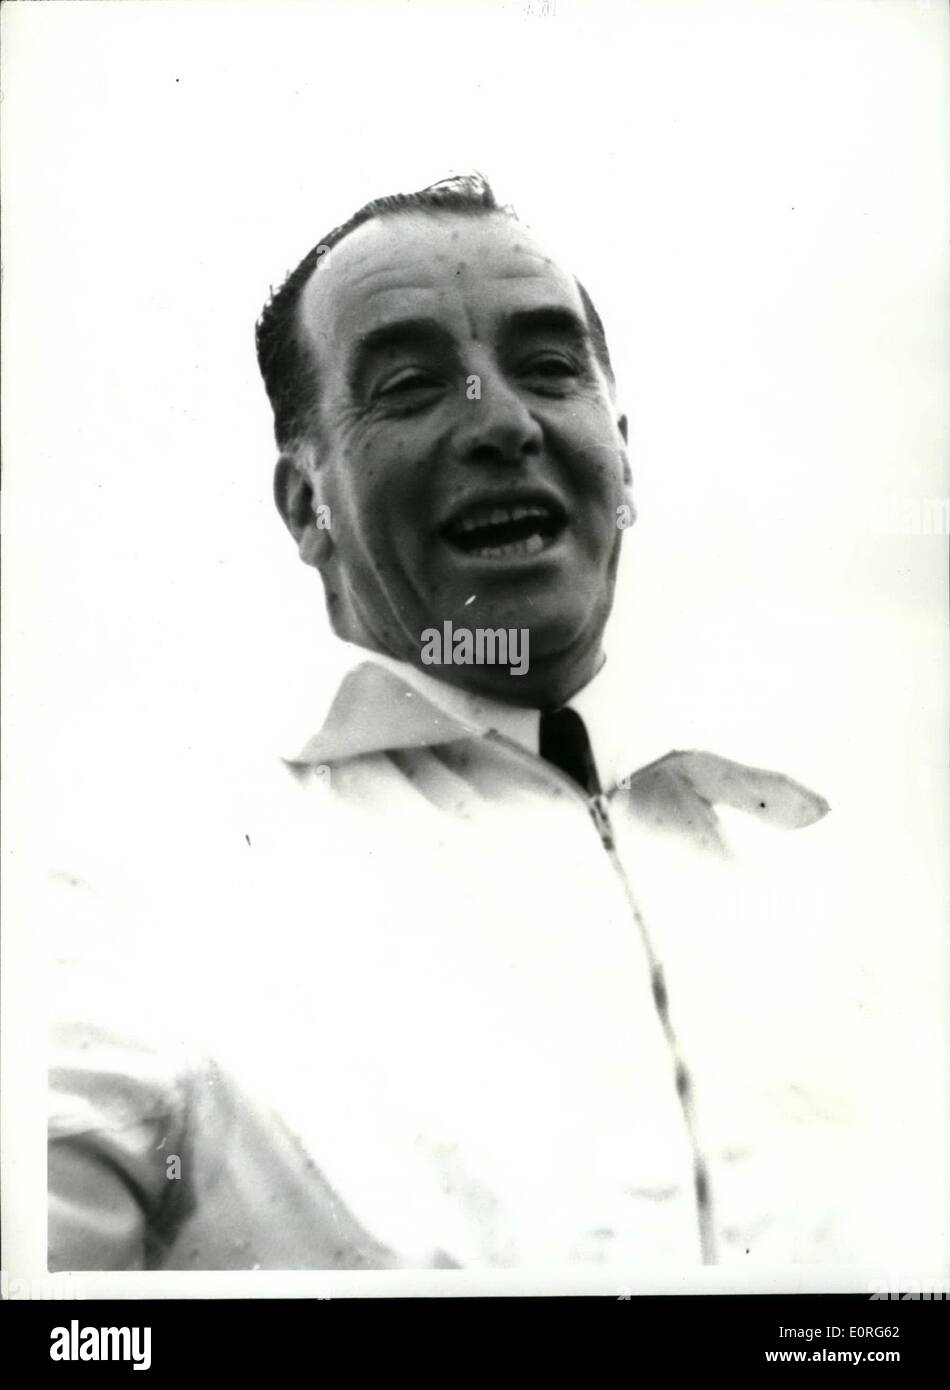 Aug. 08, 1959 - World Famous Air Pioneer Dies; Claude Graham White the world famous air pioneer - who was the holder of Britain's No. 6 flying license died today in hospital at Nice. He would have been 80 on Friday. He had been ill with a spinal complaint. He first made his name in 1910 when he took part in the London to Manchester air race. Photo Shows Claude Graham White seen at Southampton Water in July 1939 when he took part in demonstration of a new motor torpedo boat. - Stock Image